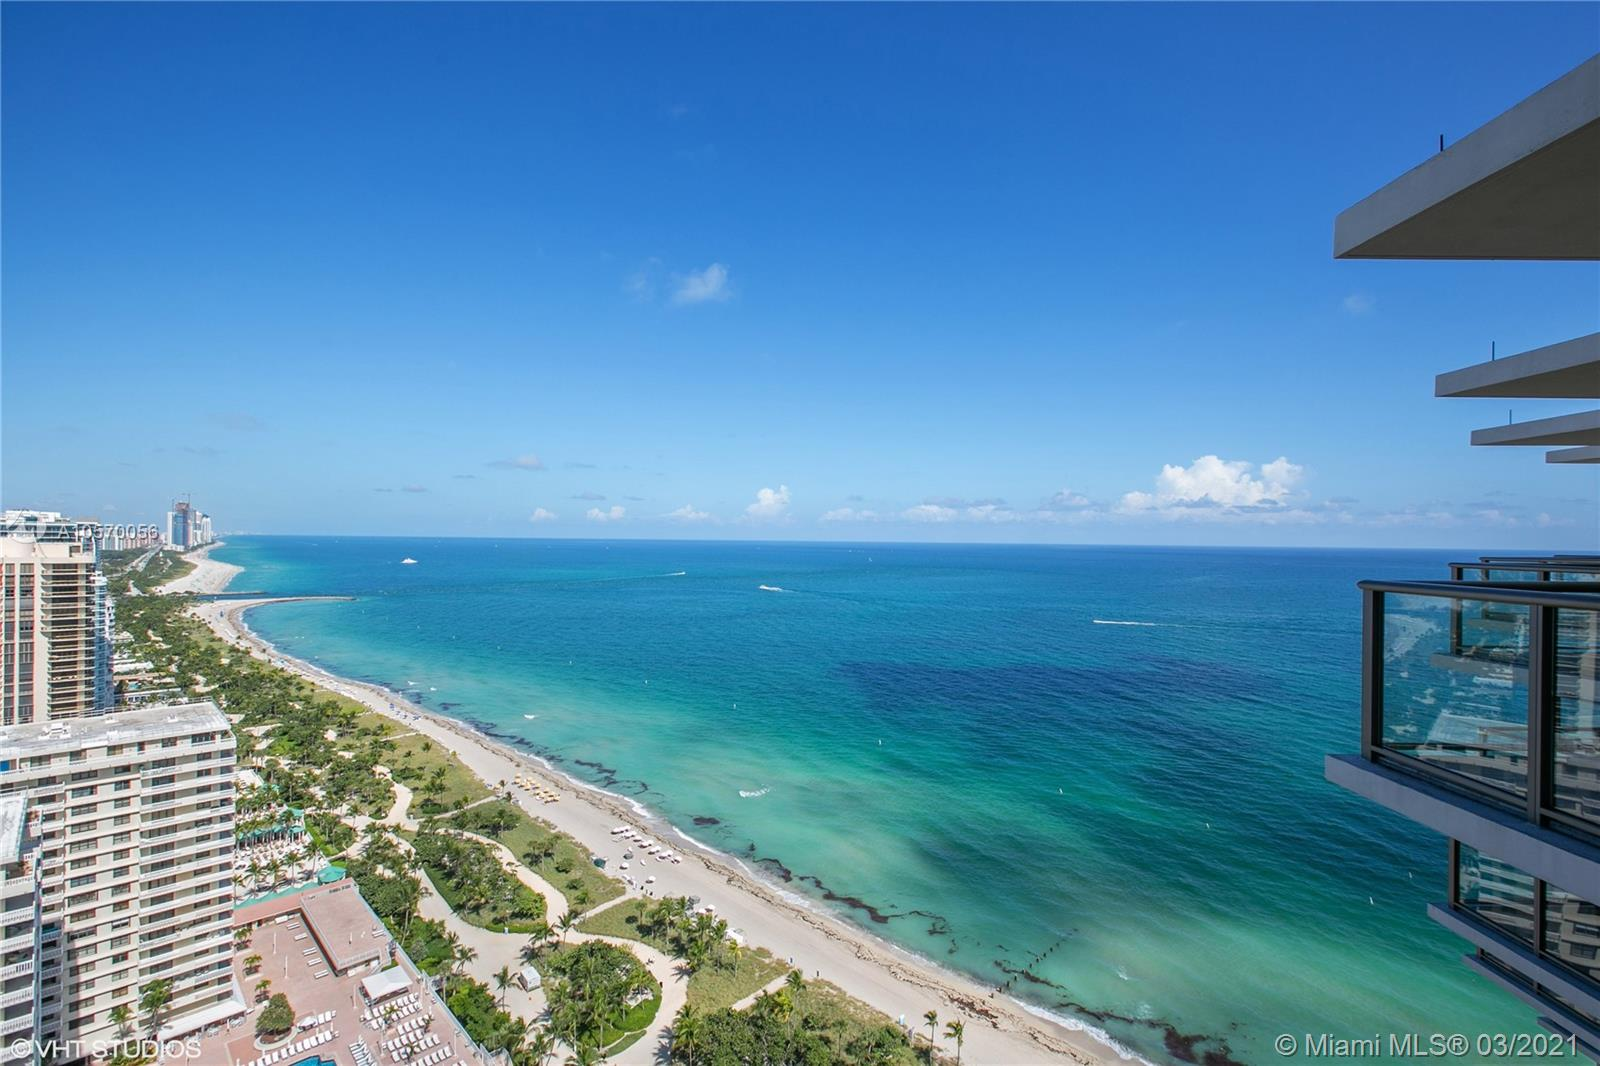 Photo of Bal Harbour Center Condo Apt PH-07 that clicks through to the property detail page